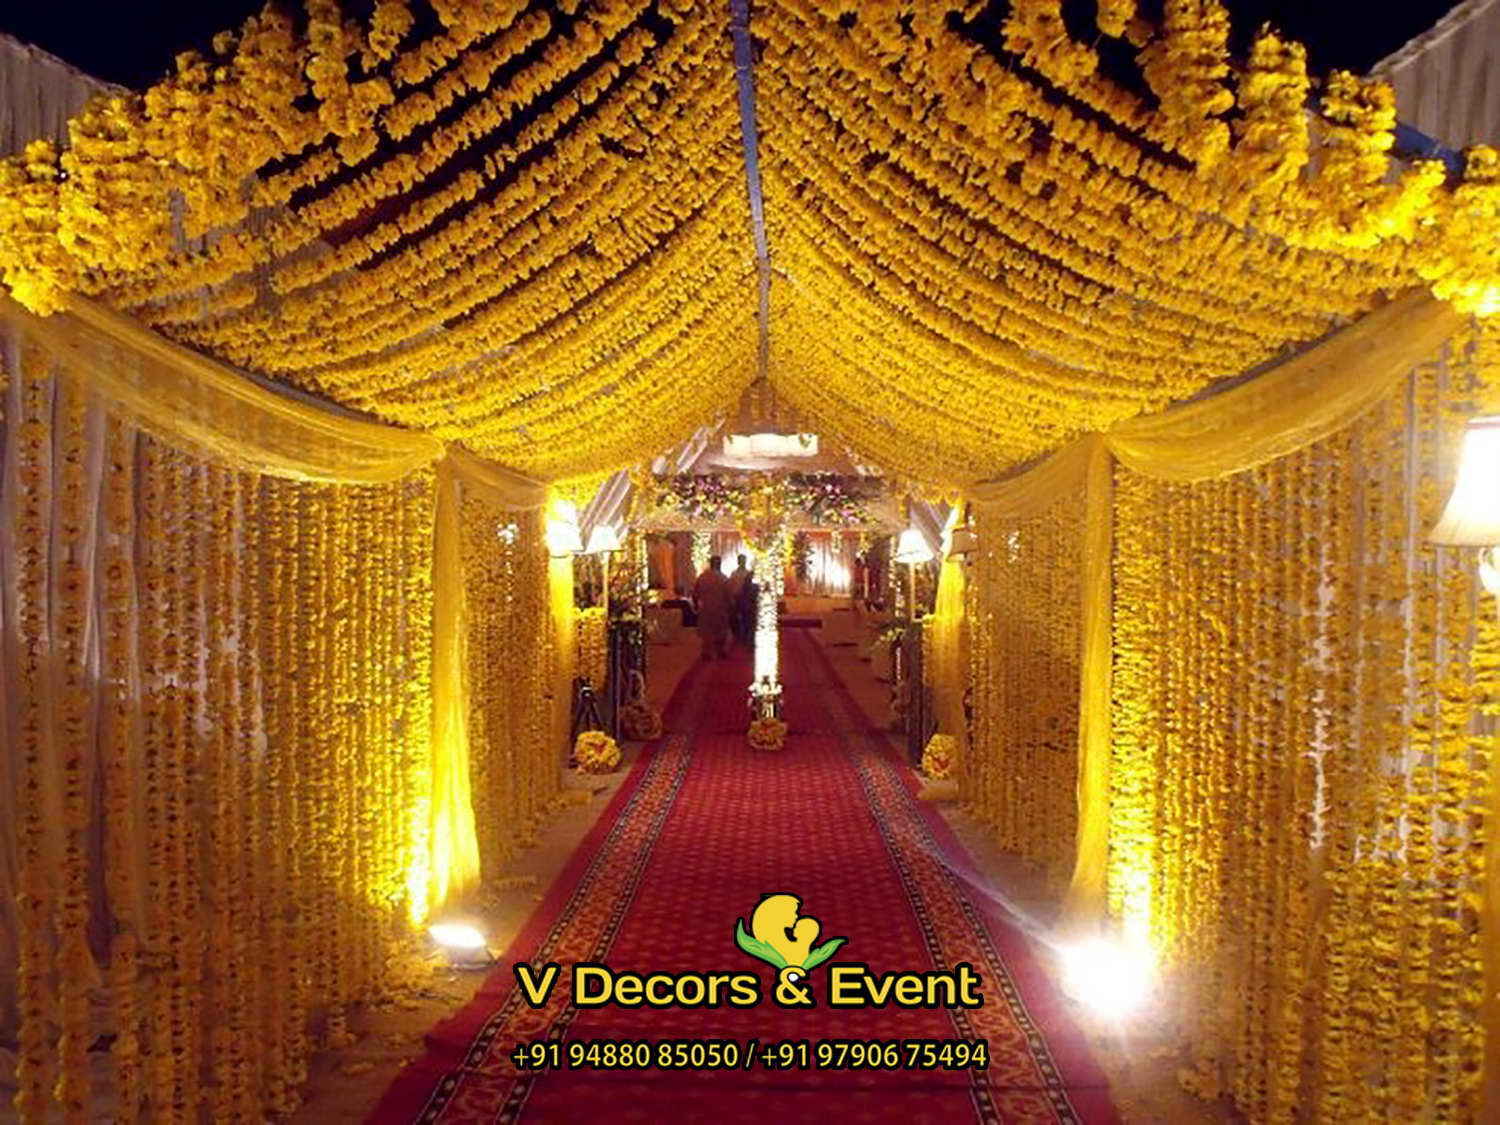 Bengali wedding decorations pictures Akron, Canton and Youngstown BEST Senior Pictures